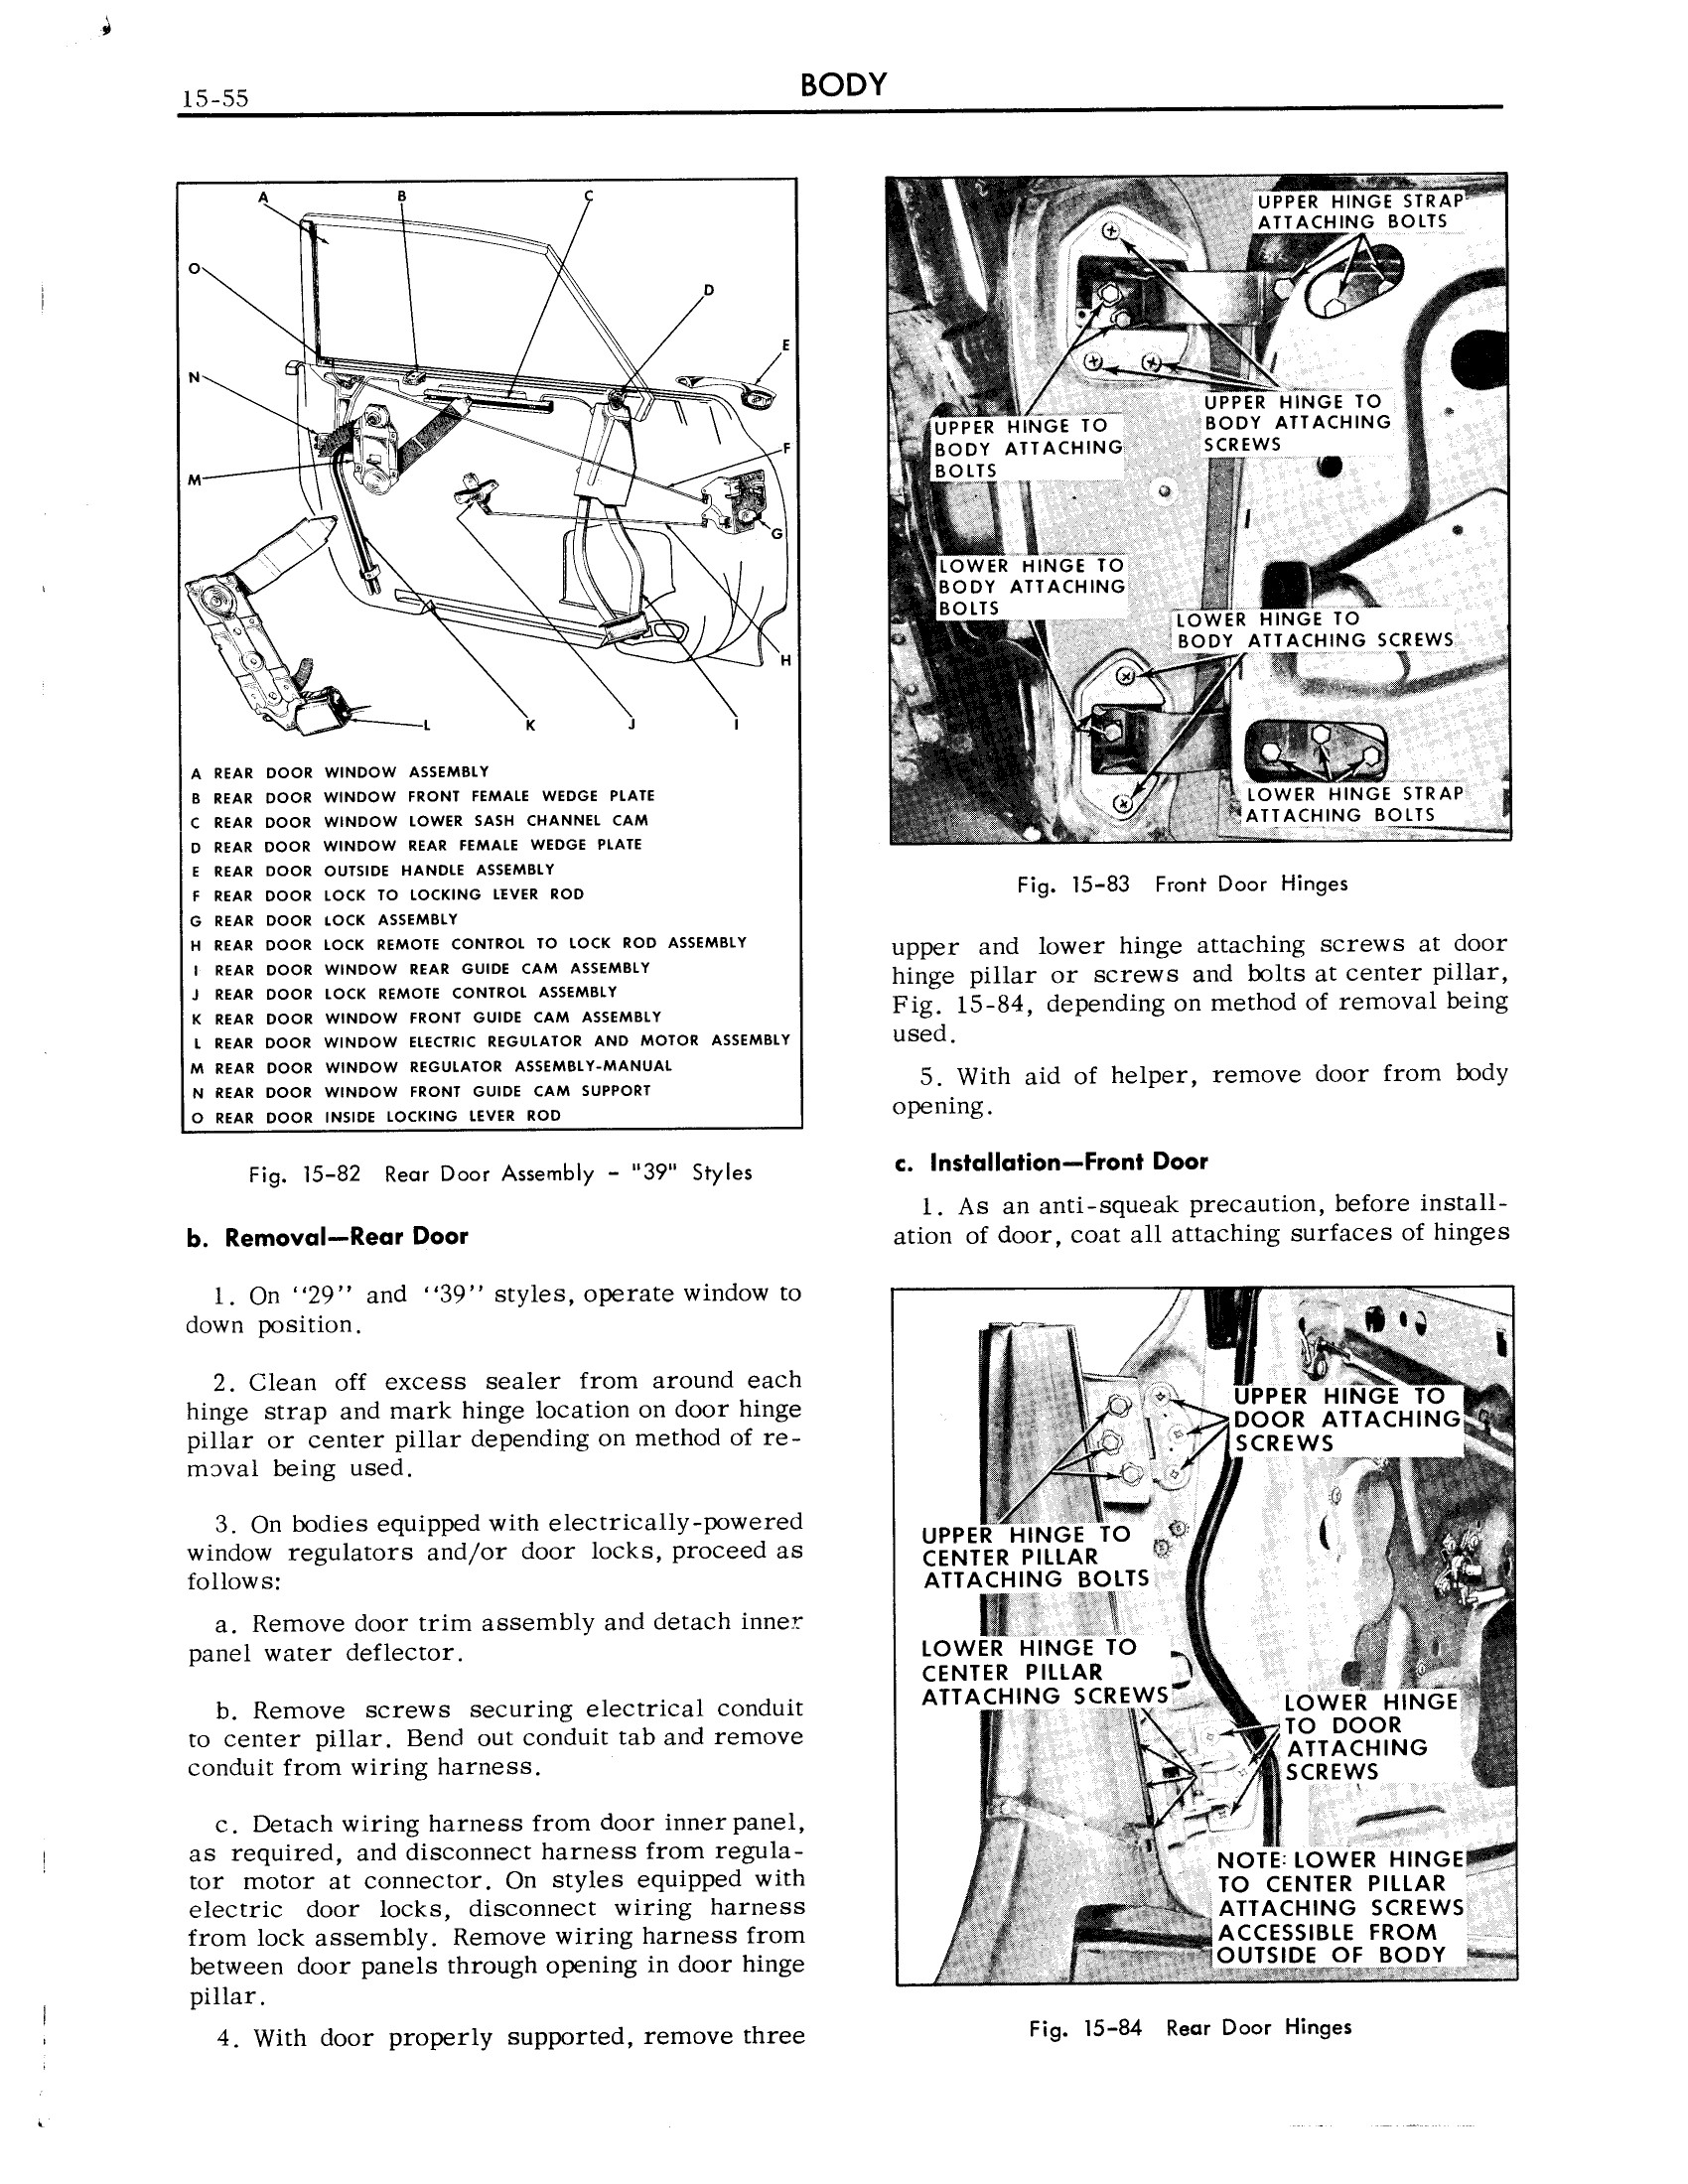 1959 Cadillac Shop Manual- Body Page 55 of 99